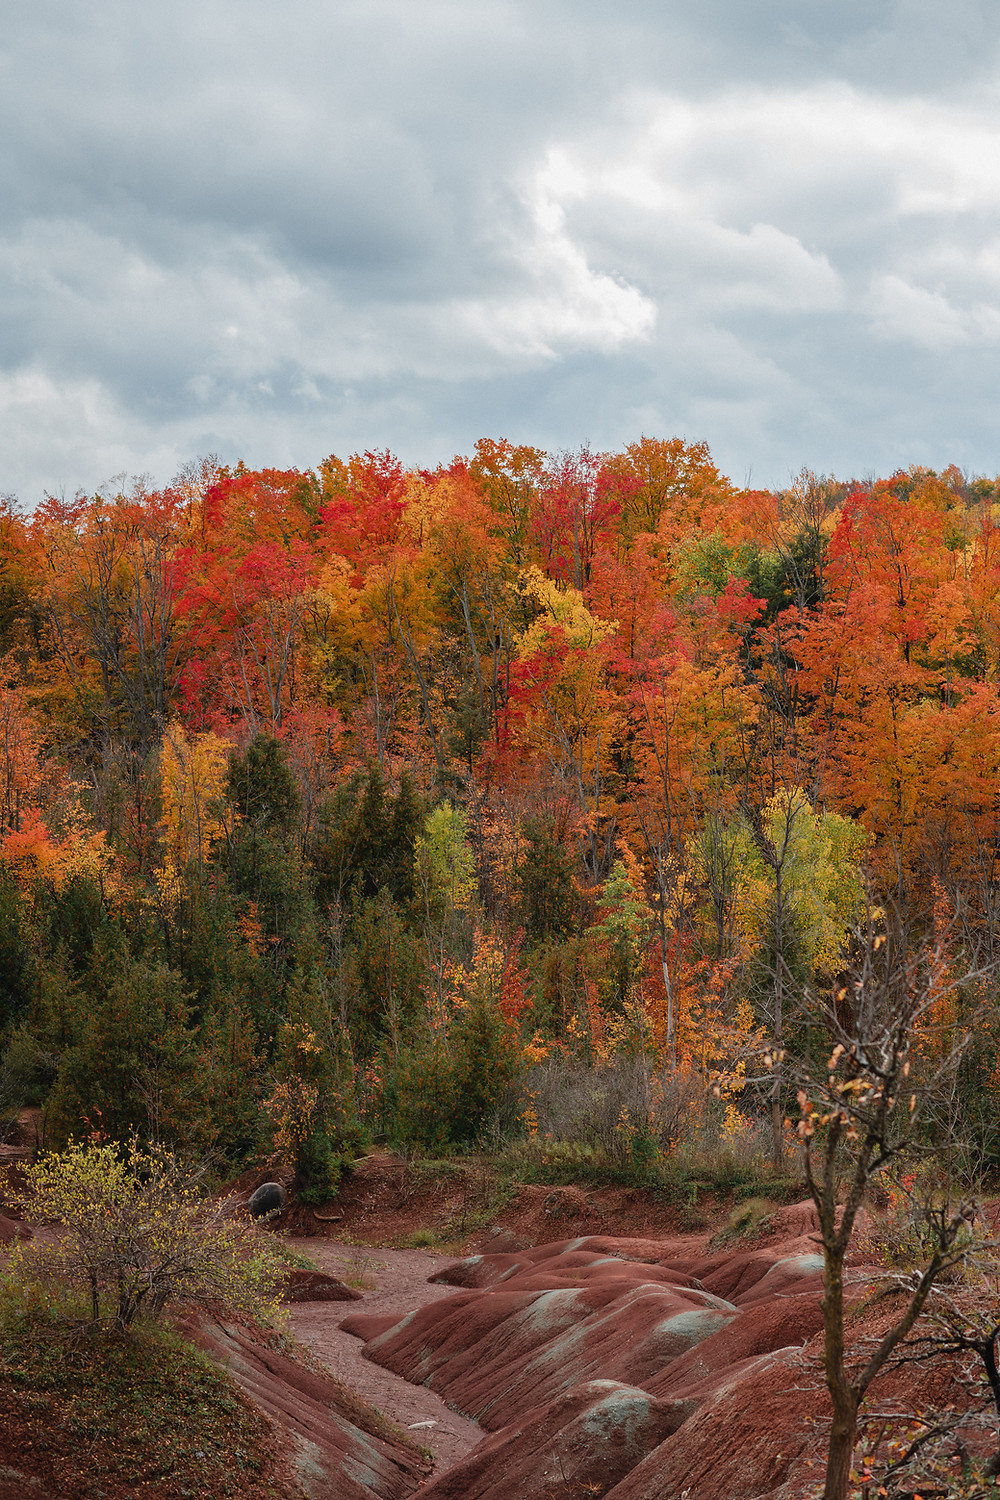 badlands, red rock, ontario, canada, fall, fall colors, rocks, desolate, landscape photographer